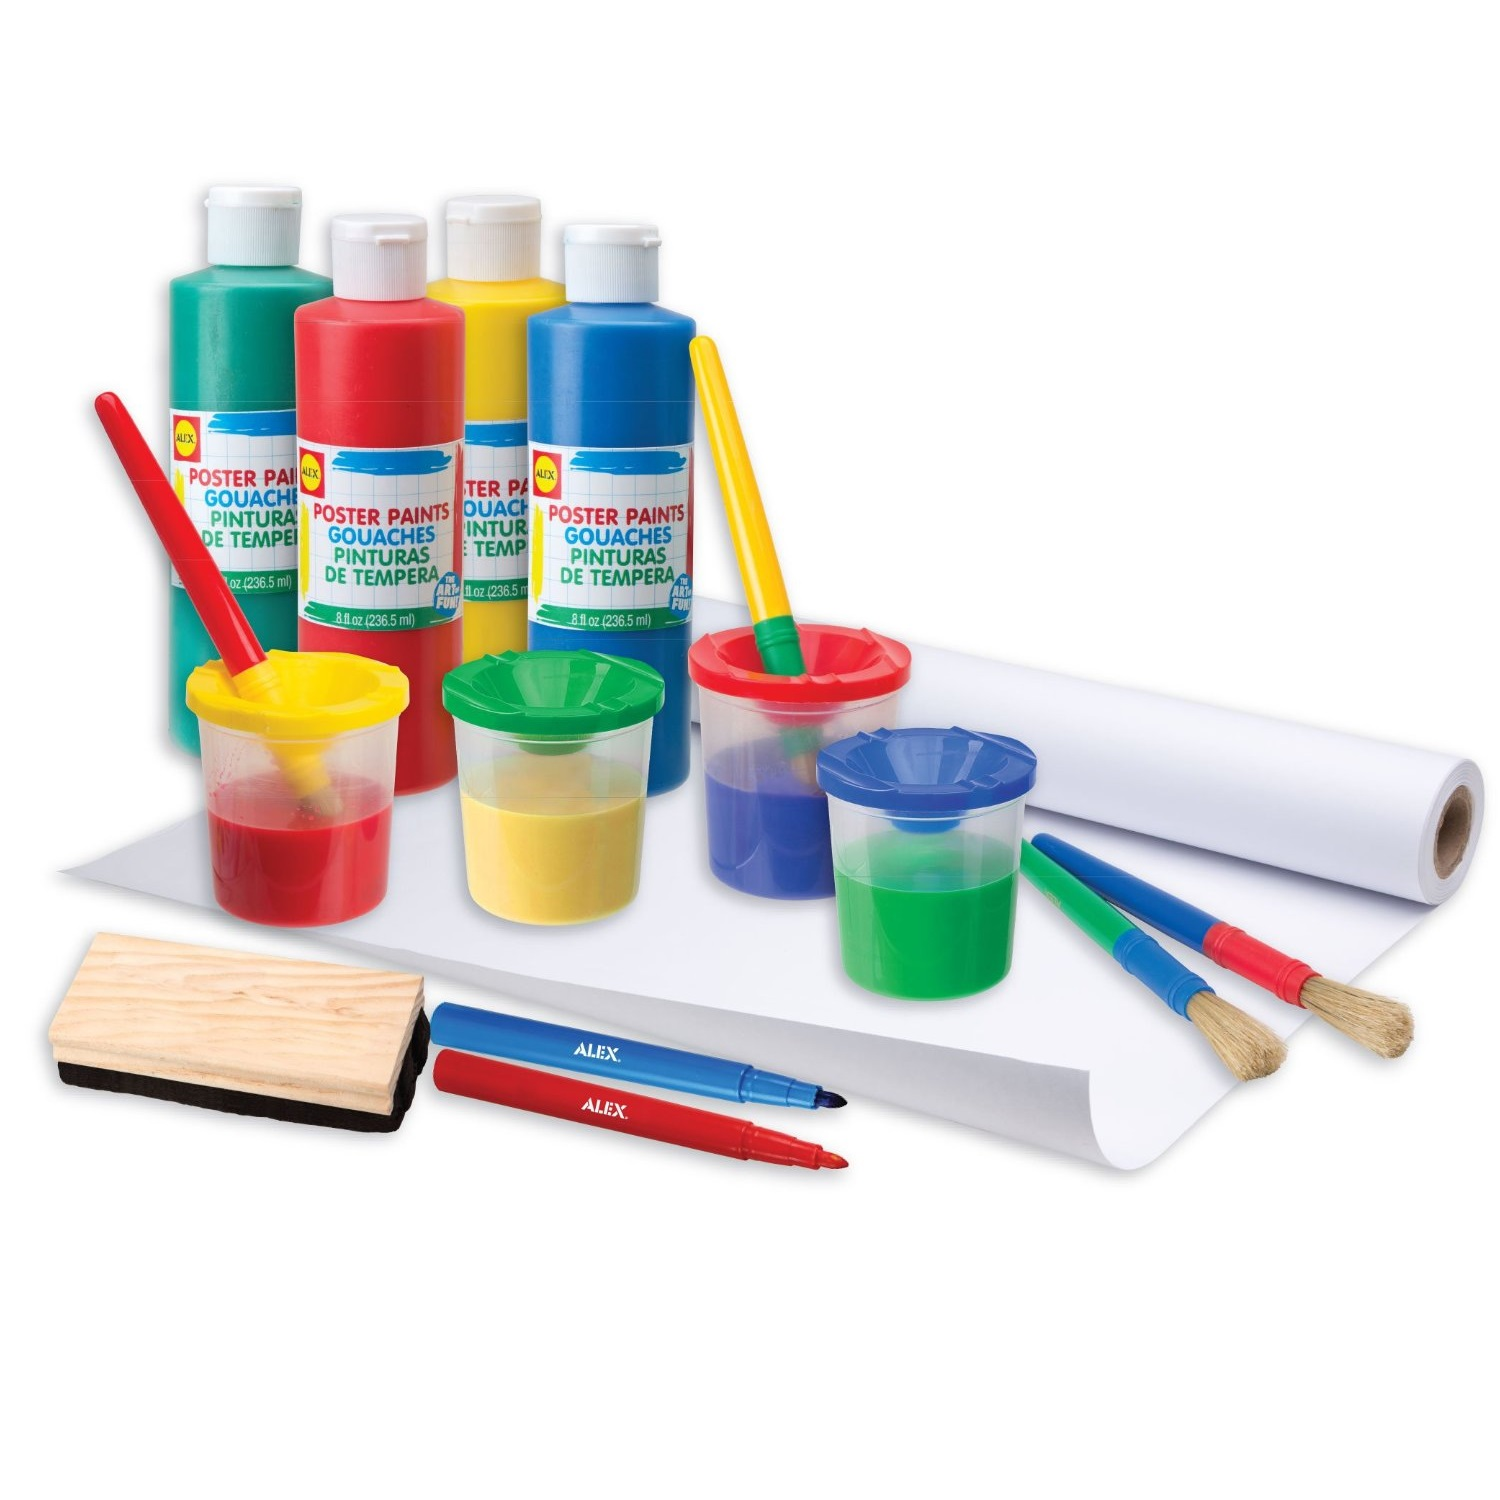 Bộ vẽ sáng tạo ALEX Toys Artist Studio Ultimate Easel Accessories Painting Kit